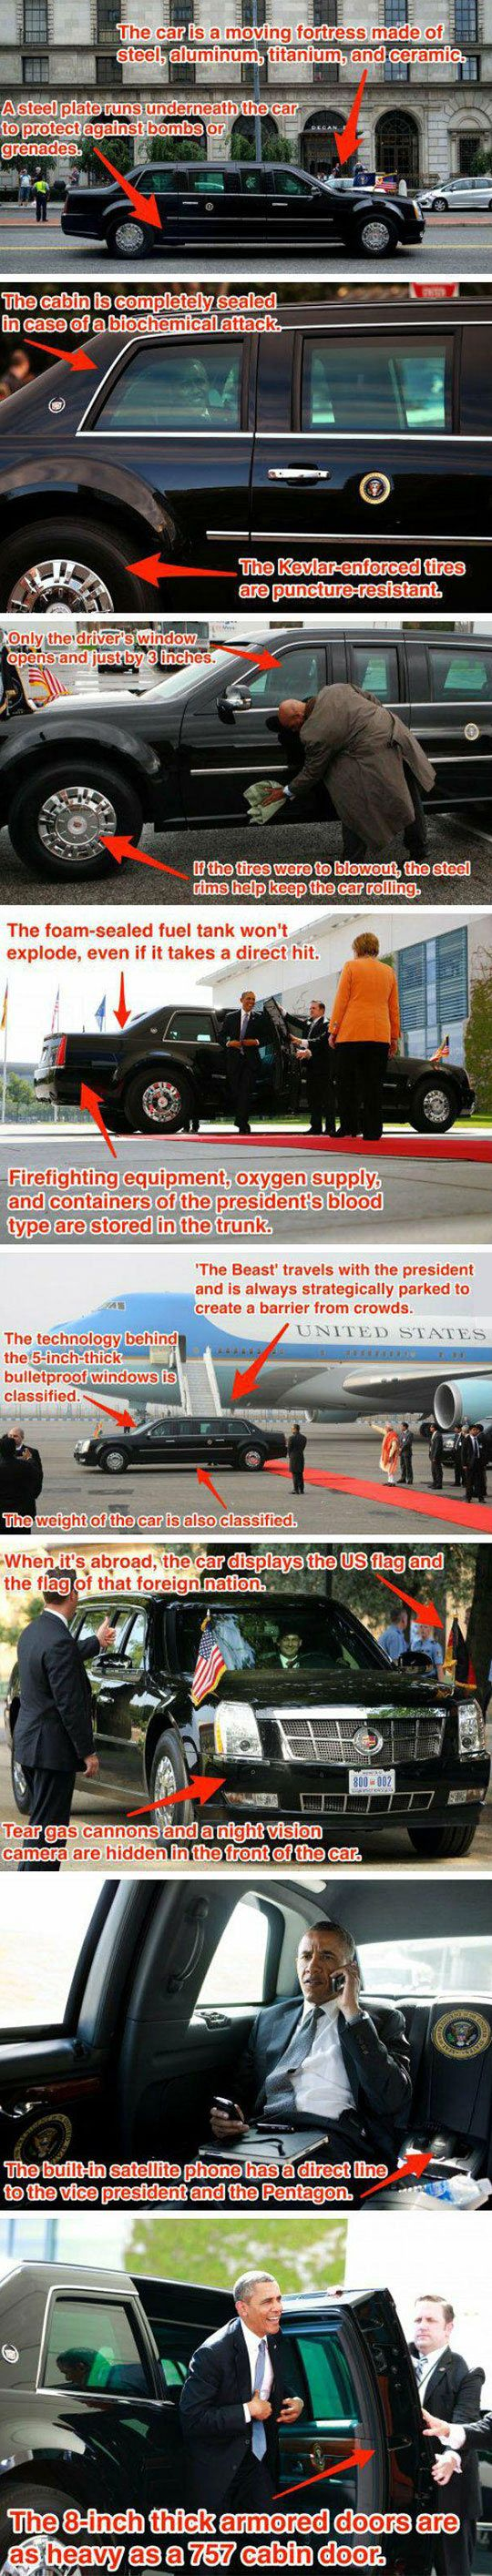 The Best Place To Be During An Apocalypse  Obama  s Car